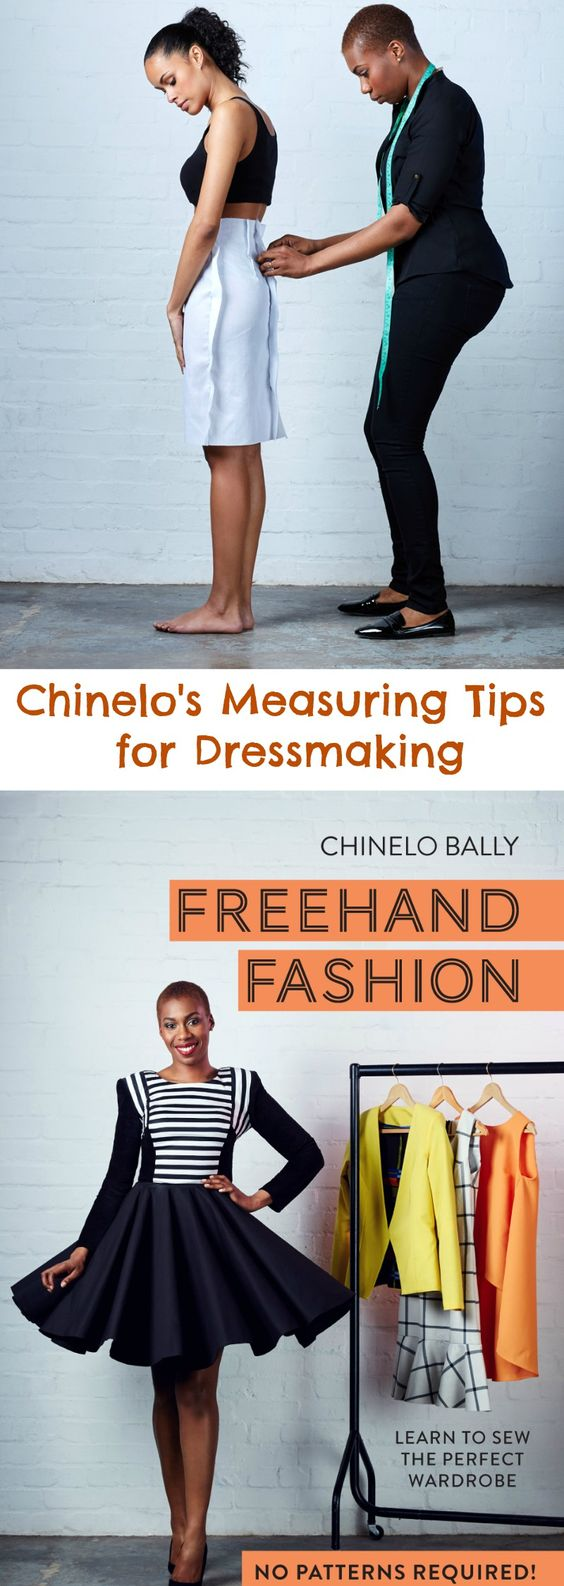 Exclusive Measuring Tips for Dressmaking from Chinelo Bally